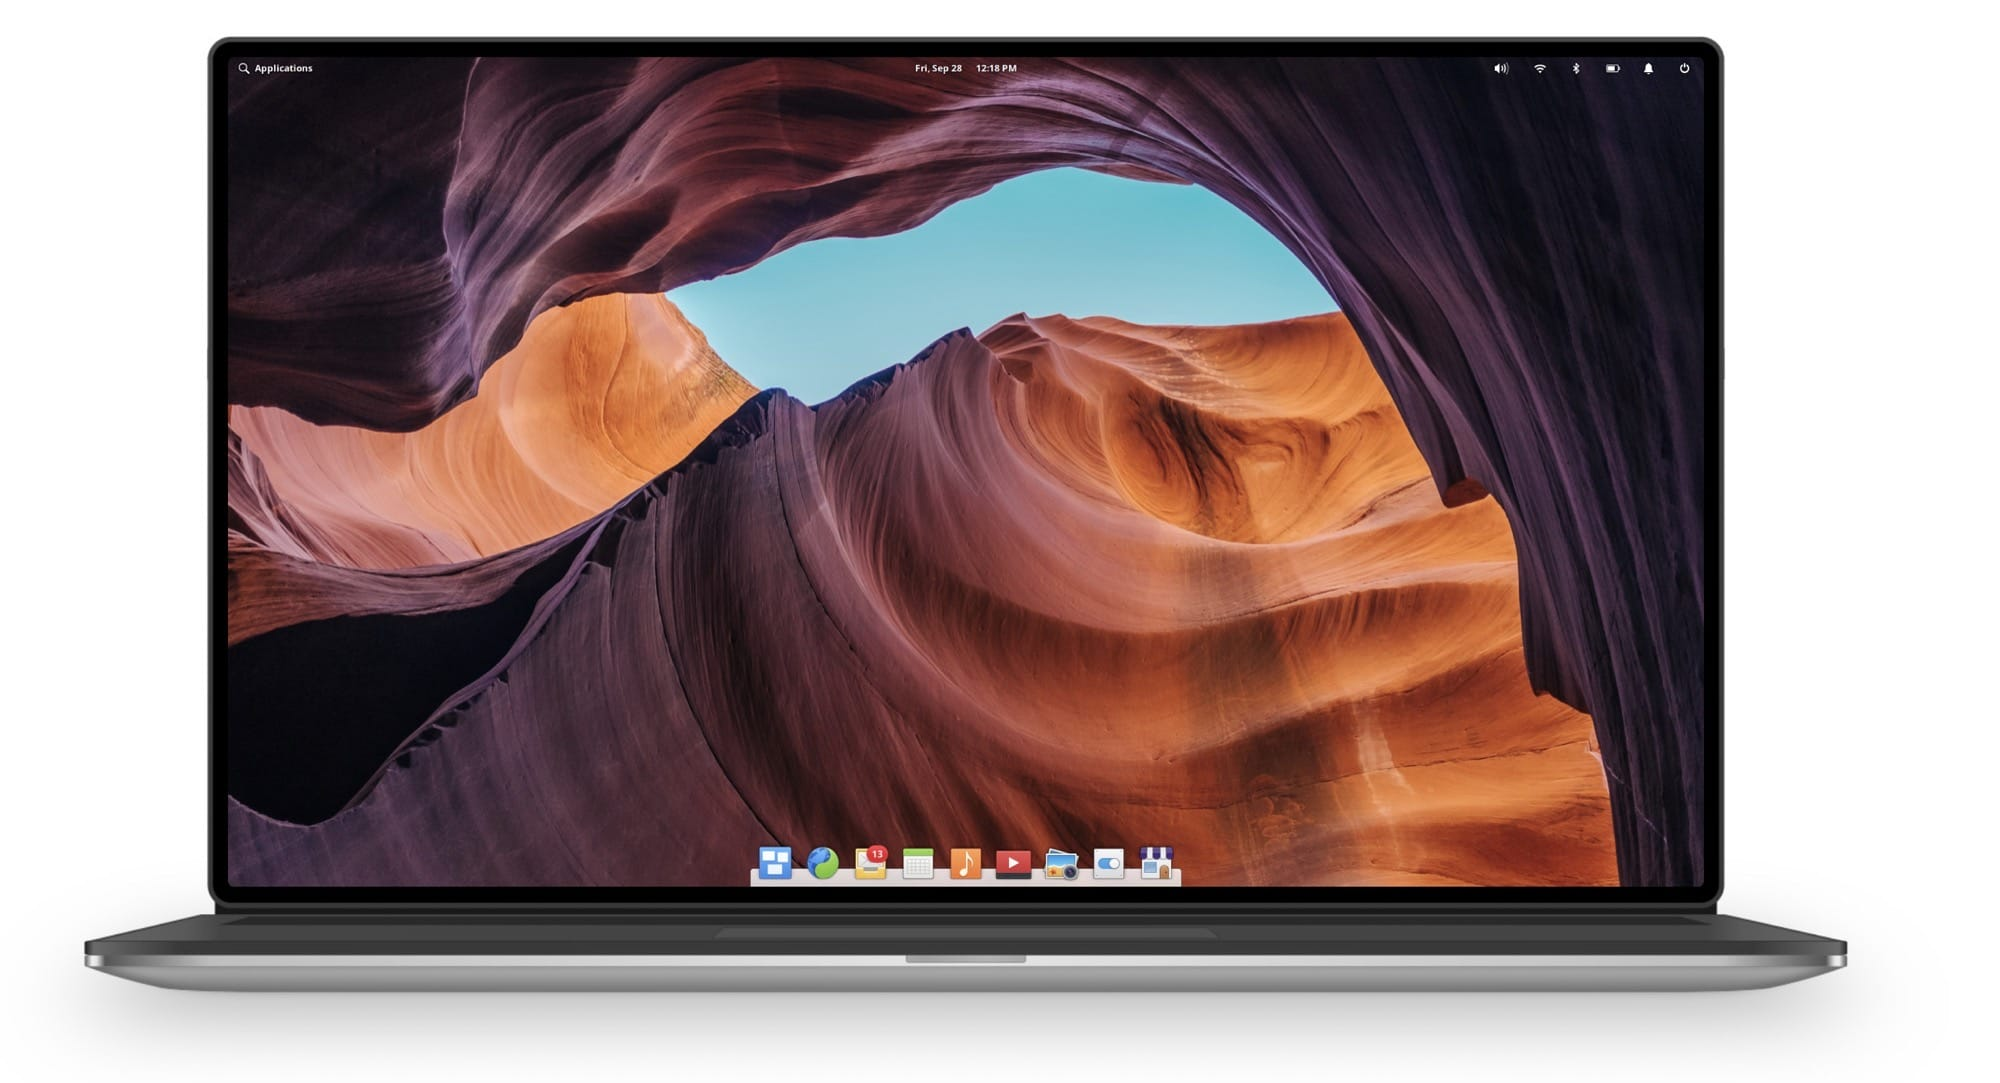 When it comes to MacBook alternatives, Linux is an option (and elementary OS looks pretty sweet).